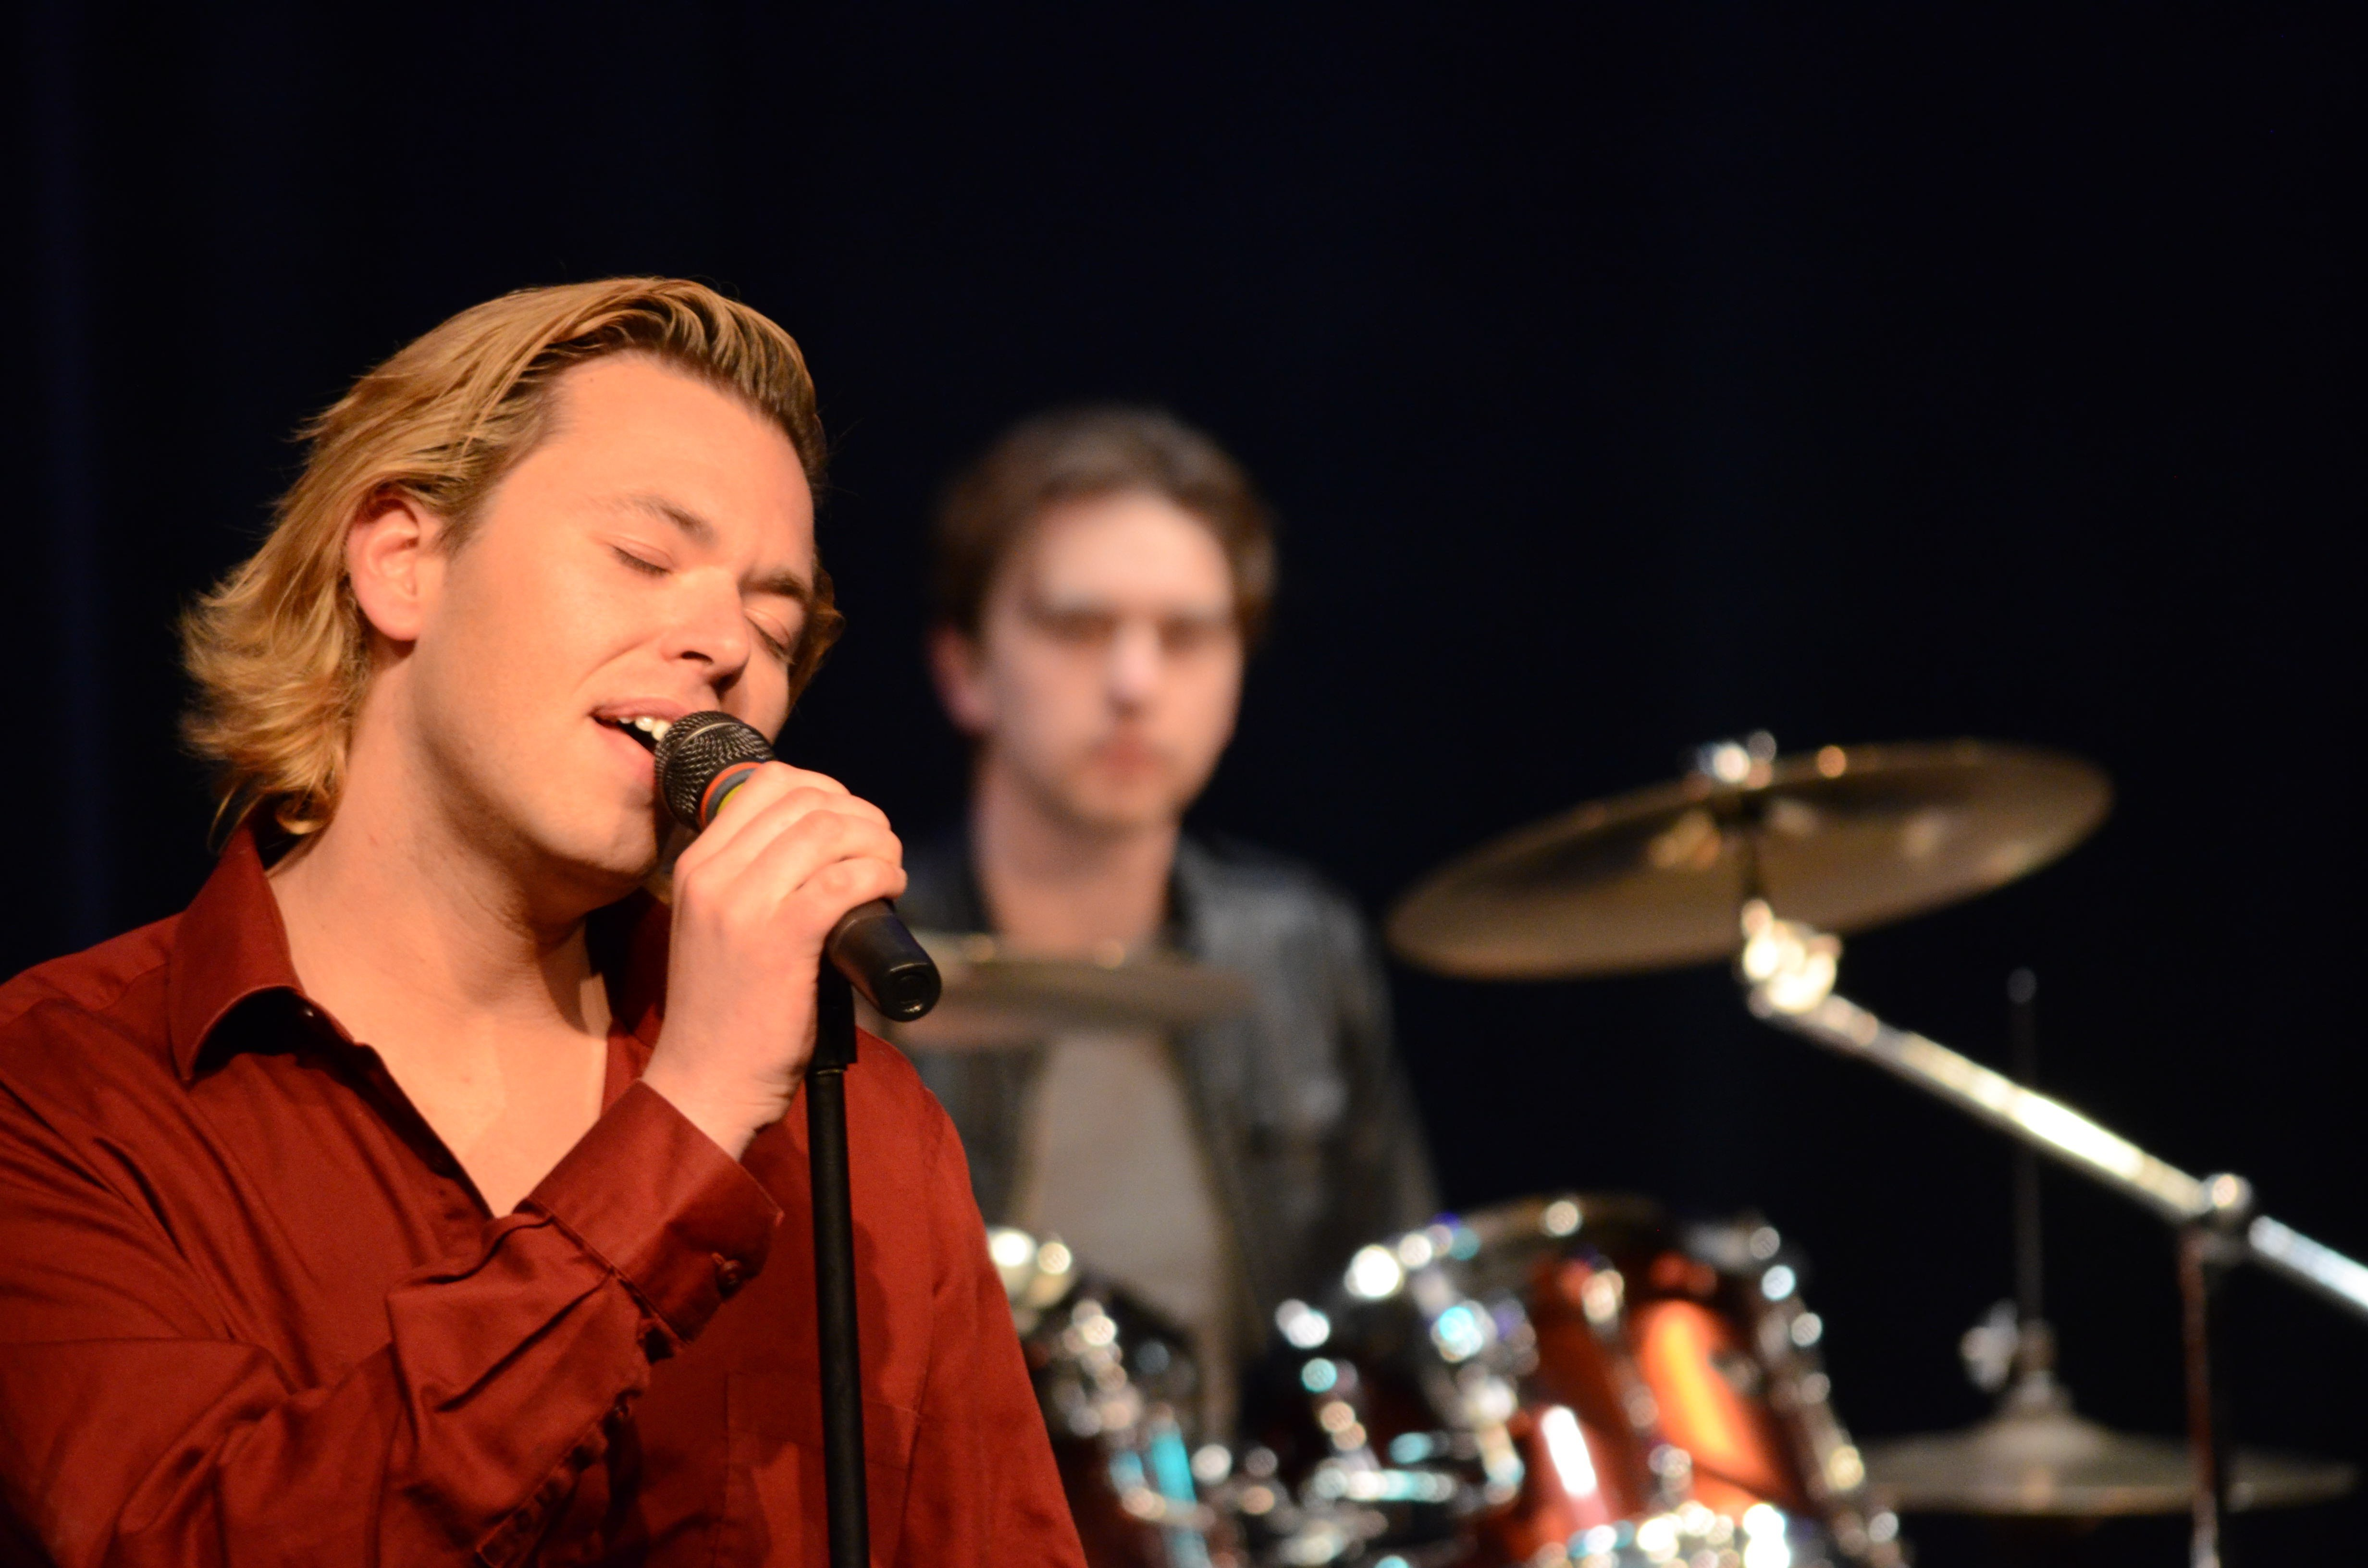 a young man with blond hair wearing a red shirt singing into a microphone with a guy playing drums in the background